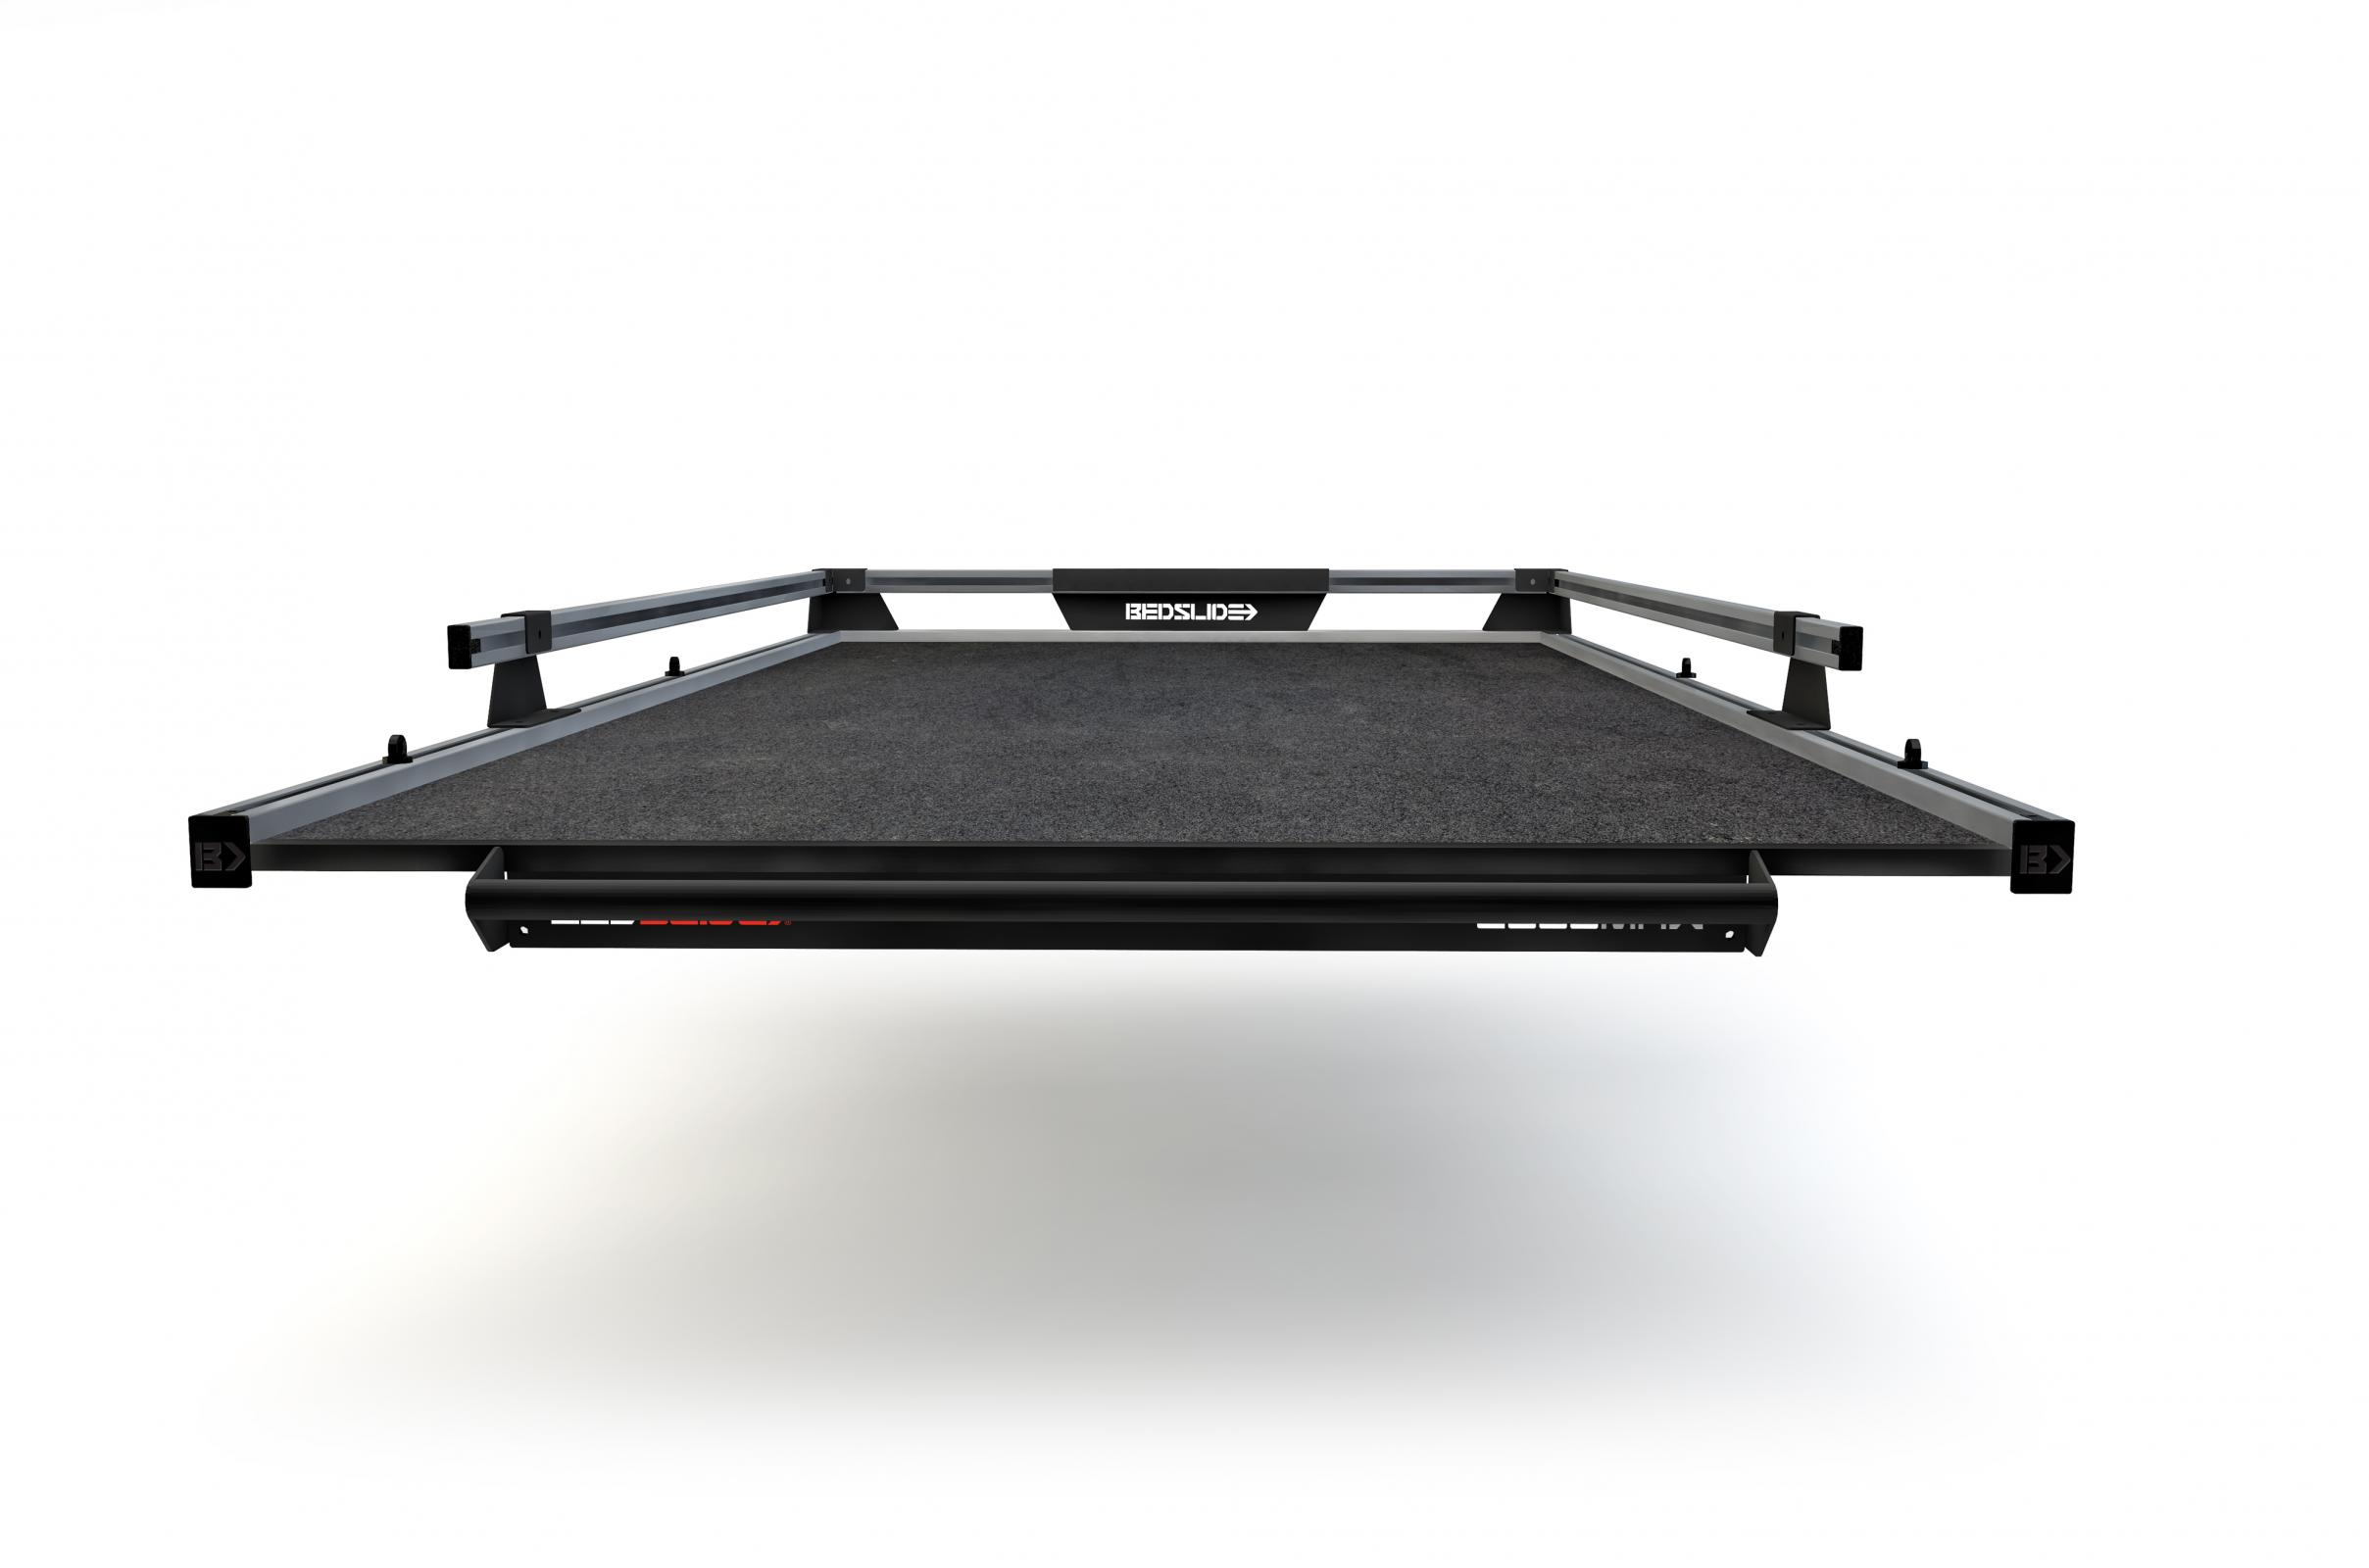 BedSLIDE 6 5 FT Short Bed Chevy/Dodge/Ford/Nissan/Toyota Full Ext 2000lbs Max 75X48 Inch